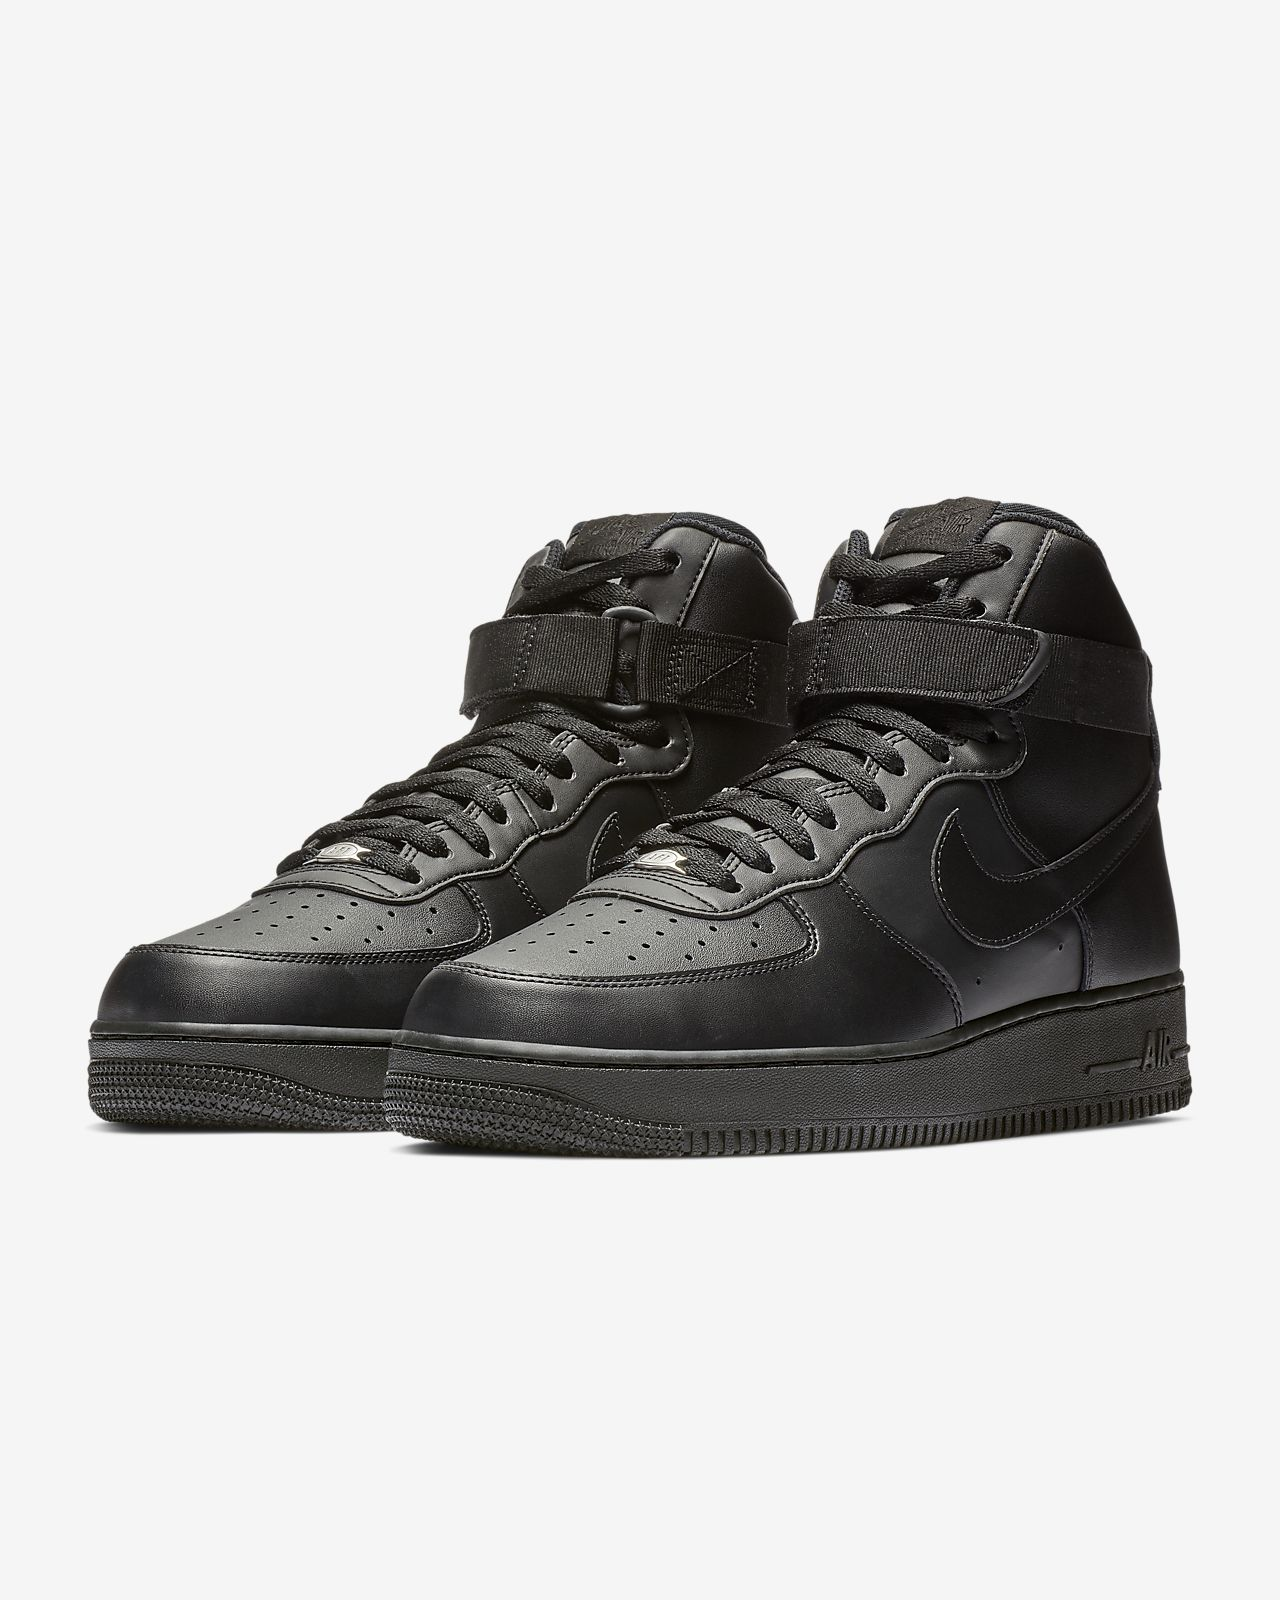 9e7ddbef5906a7 Nike Air Force 1 High 07 Men s Shoe. Nike.com